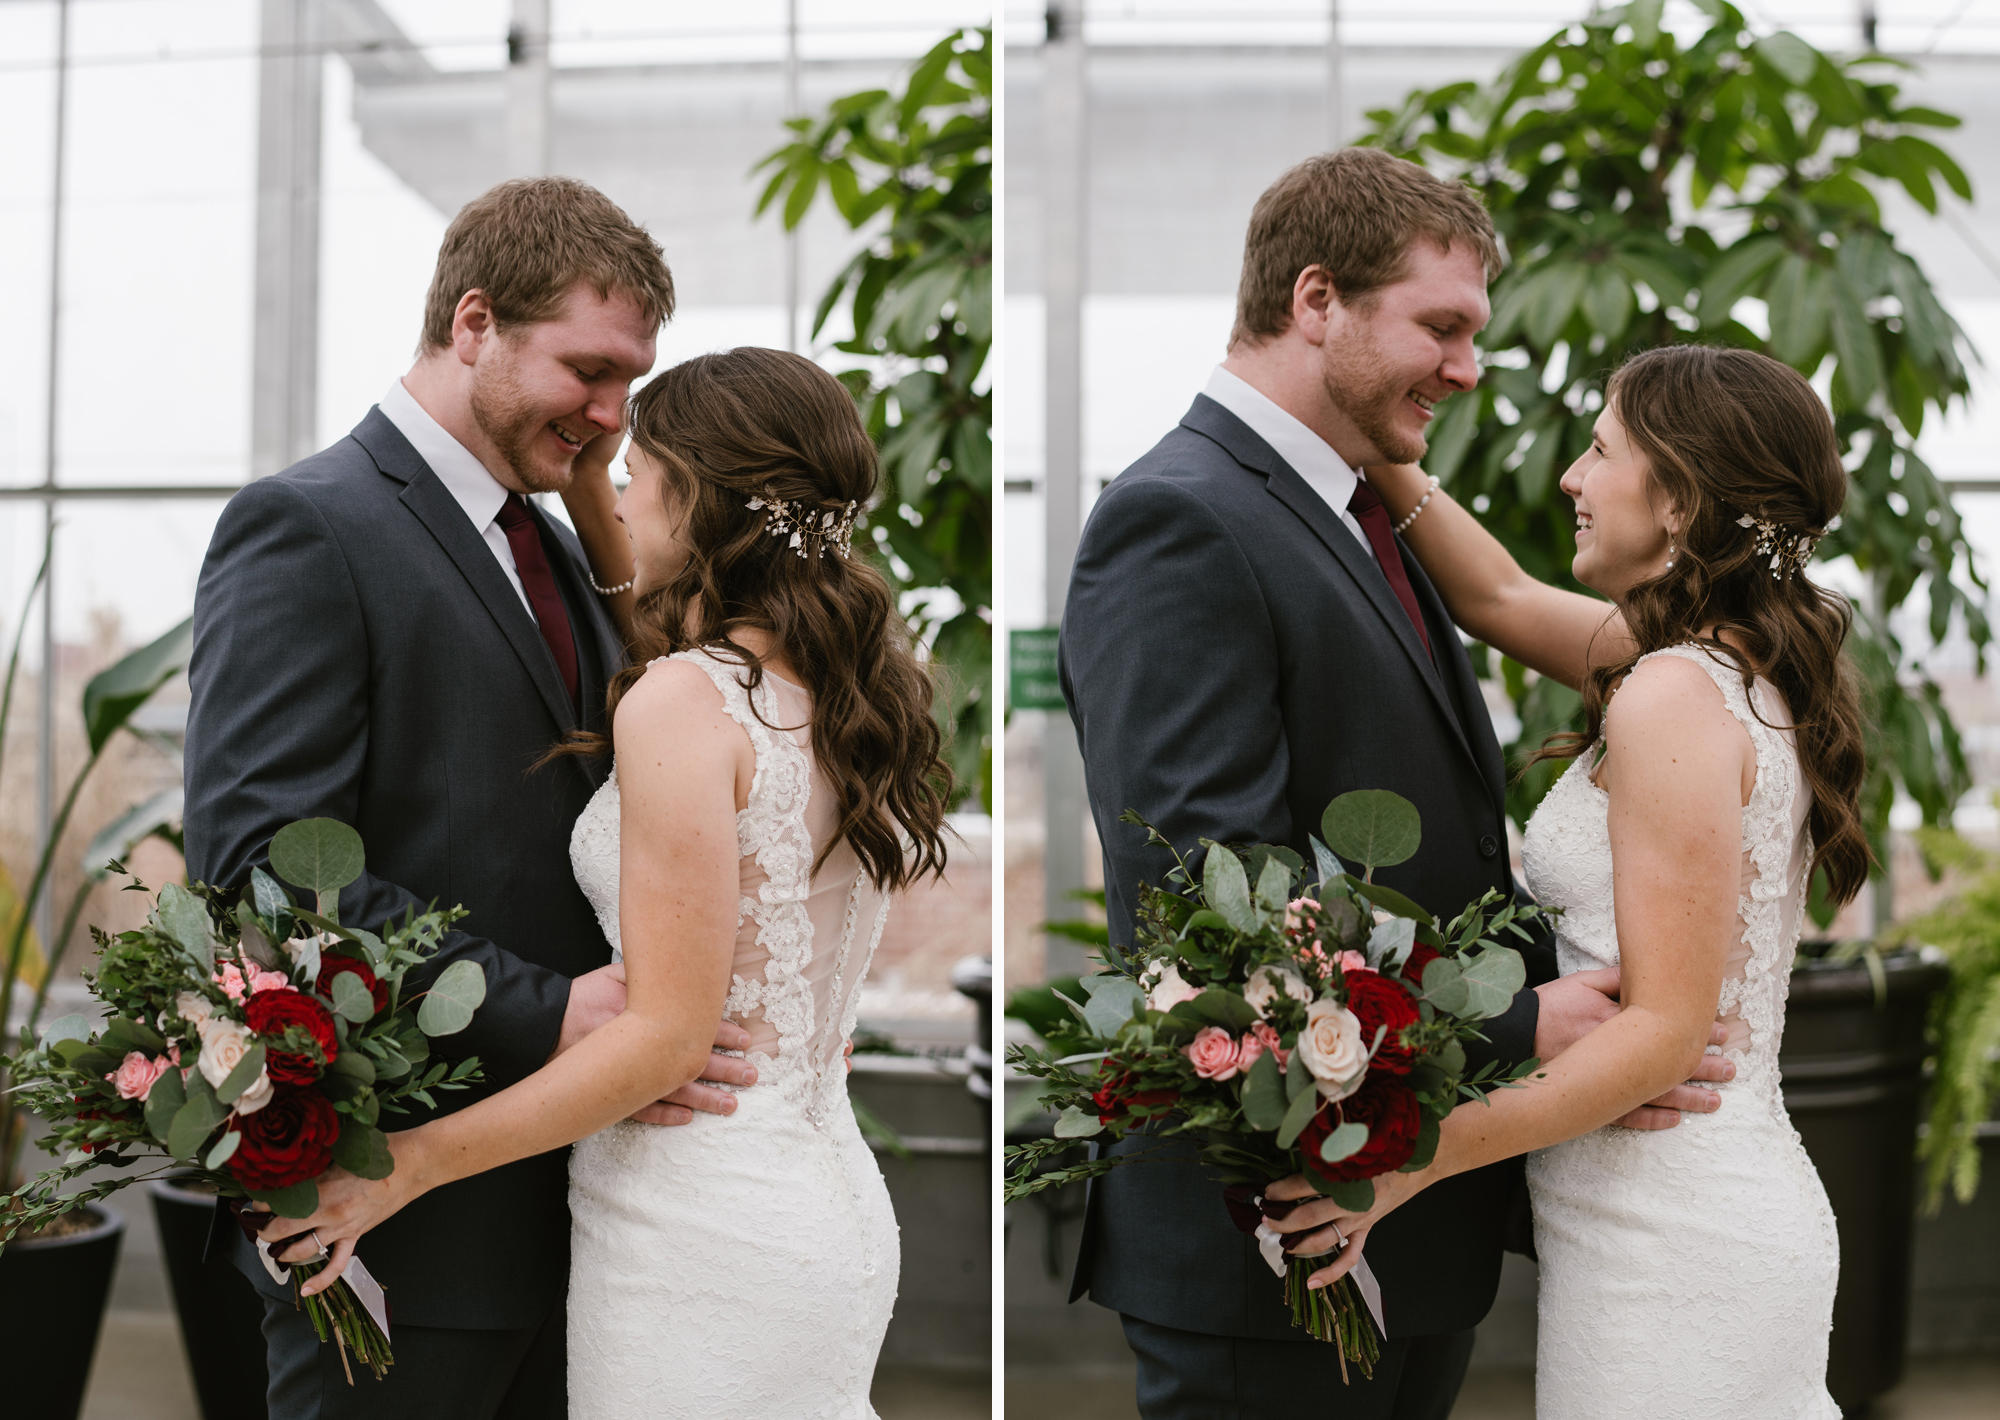 grand-rapids-wedding-photographer-bride-groom-first-look.jpg